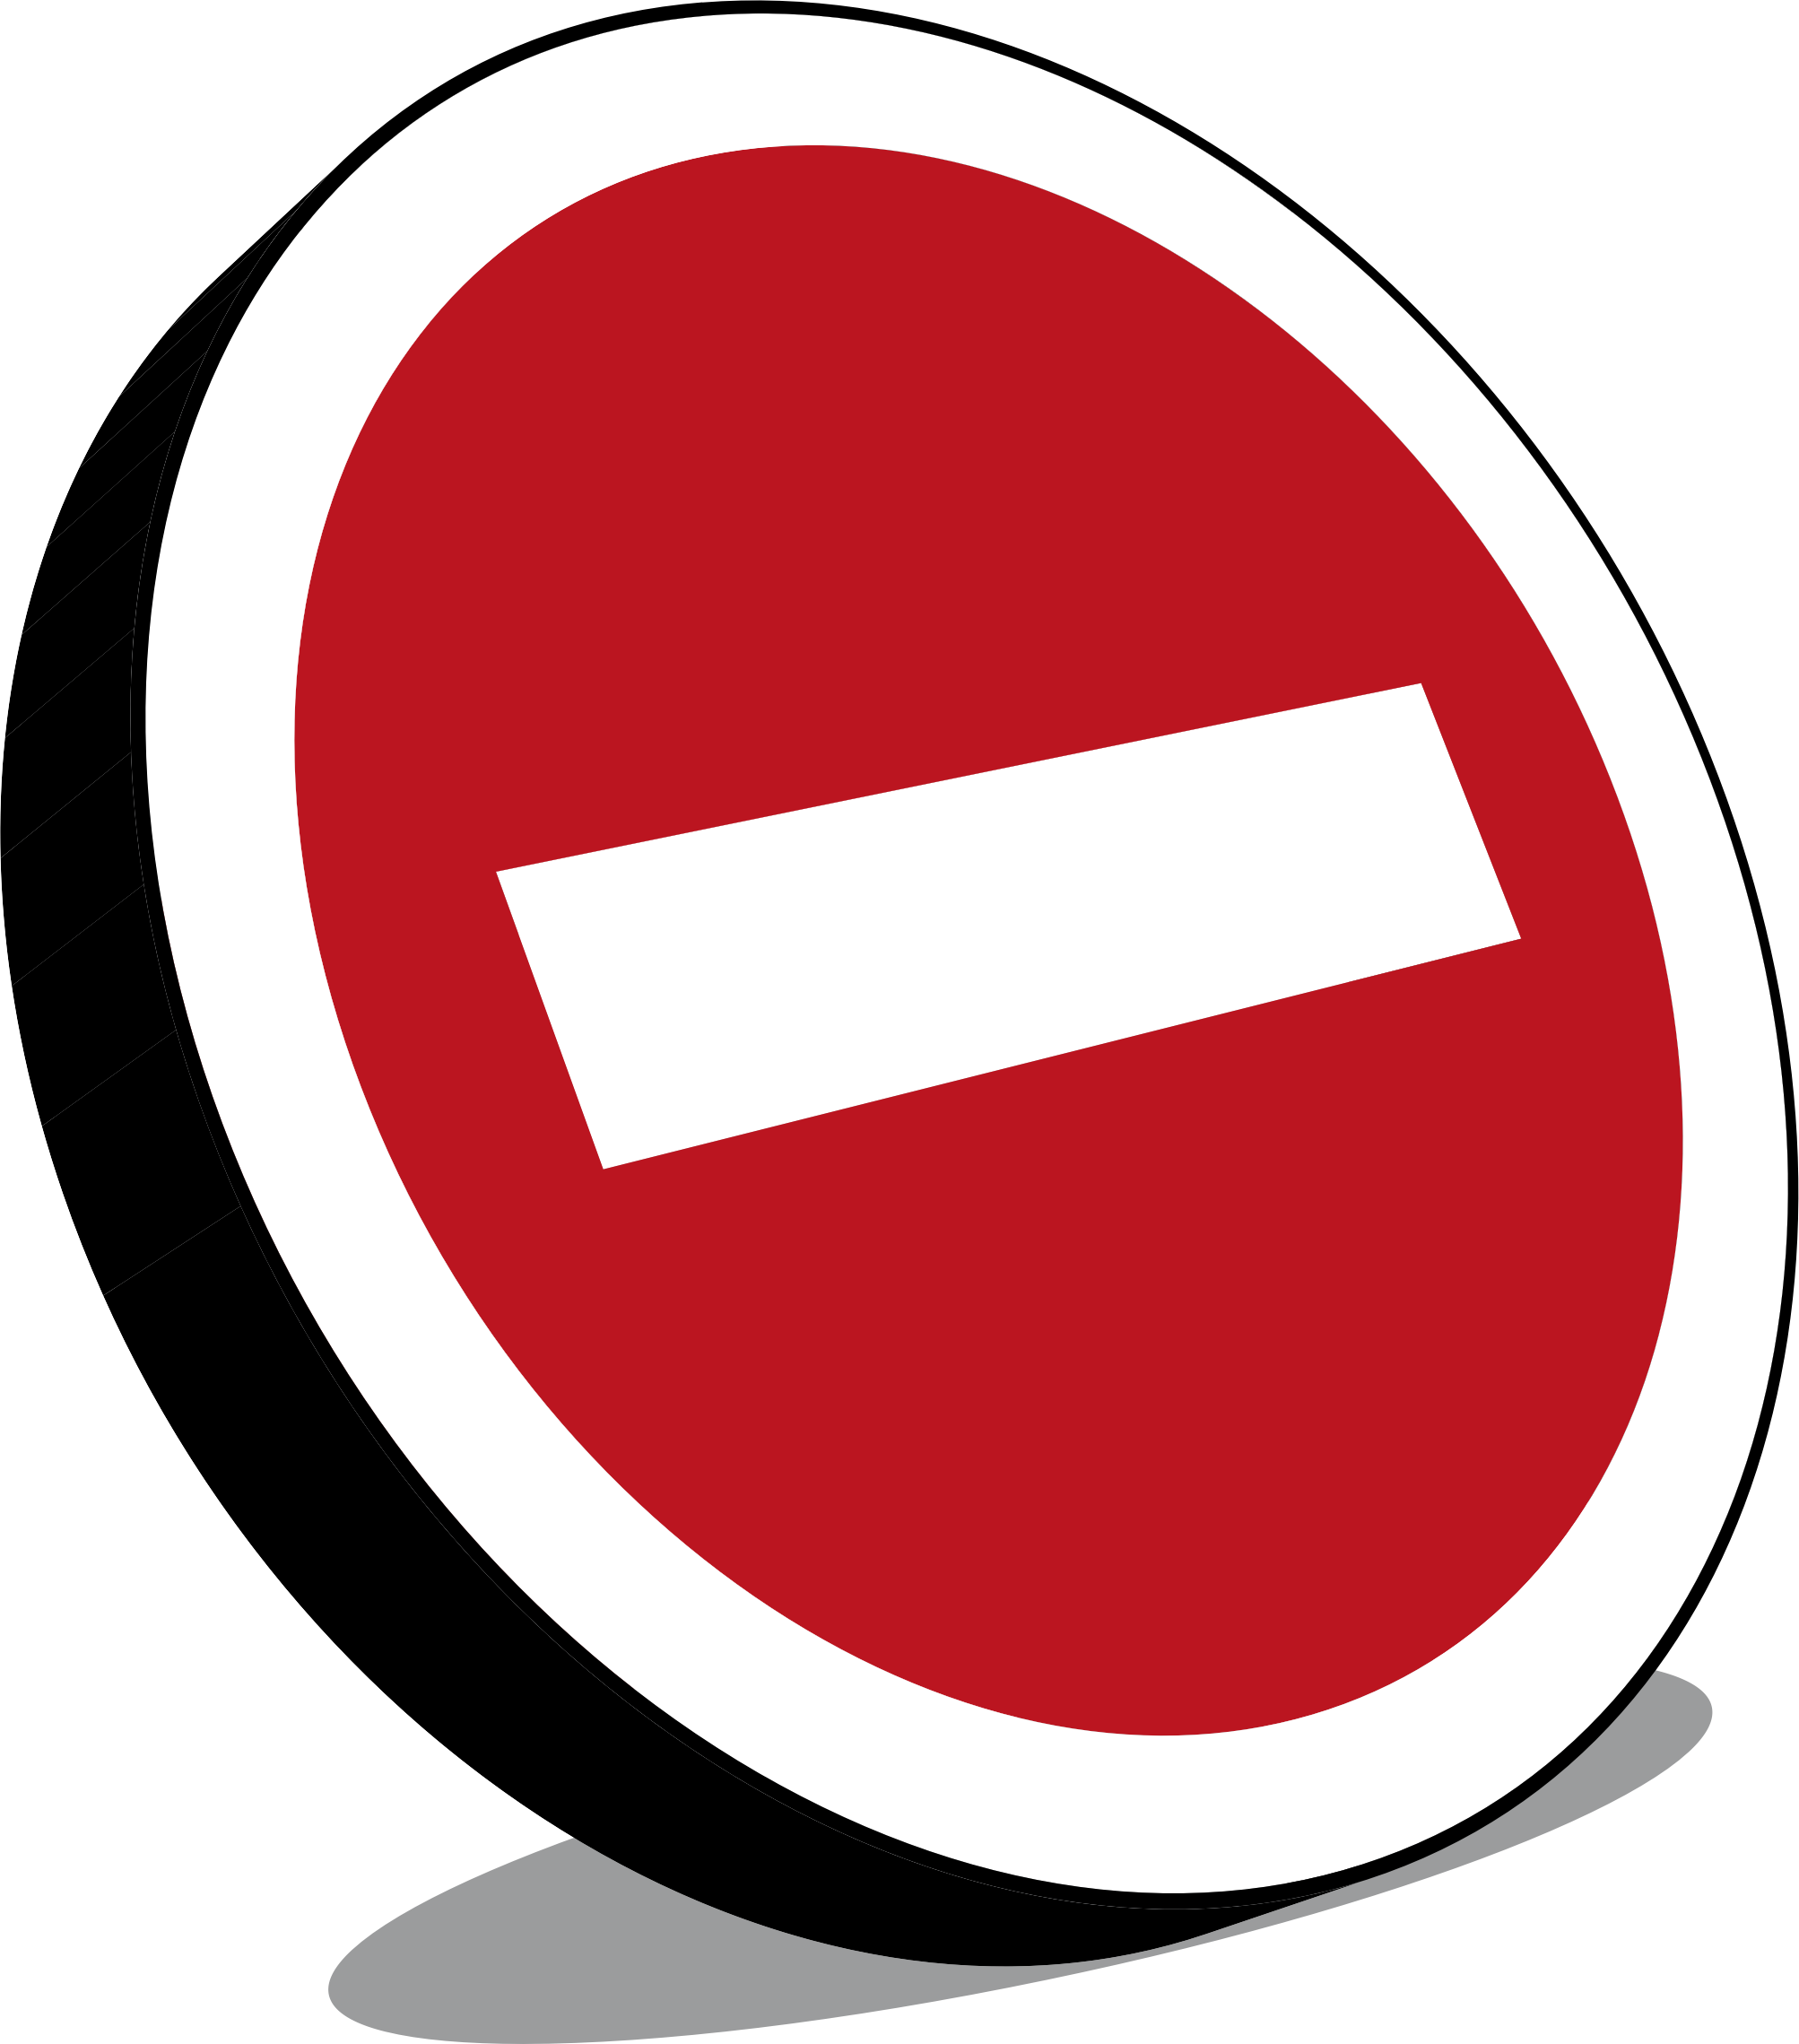 No entry sign, Panneau sens interdit by enolynn